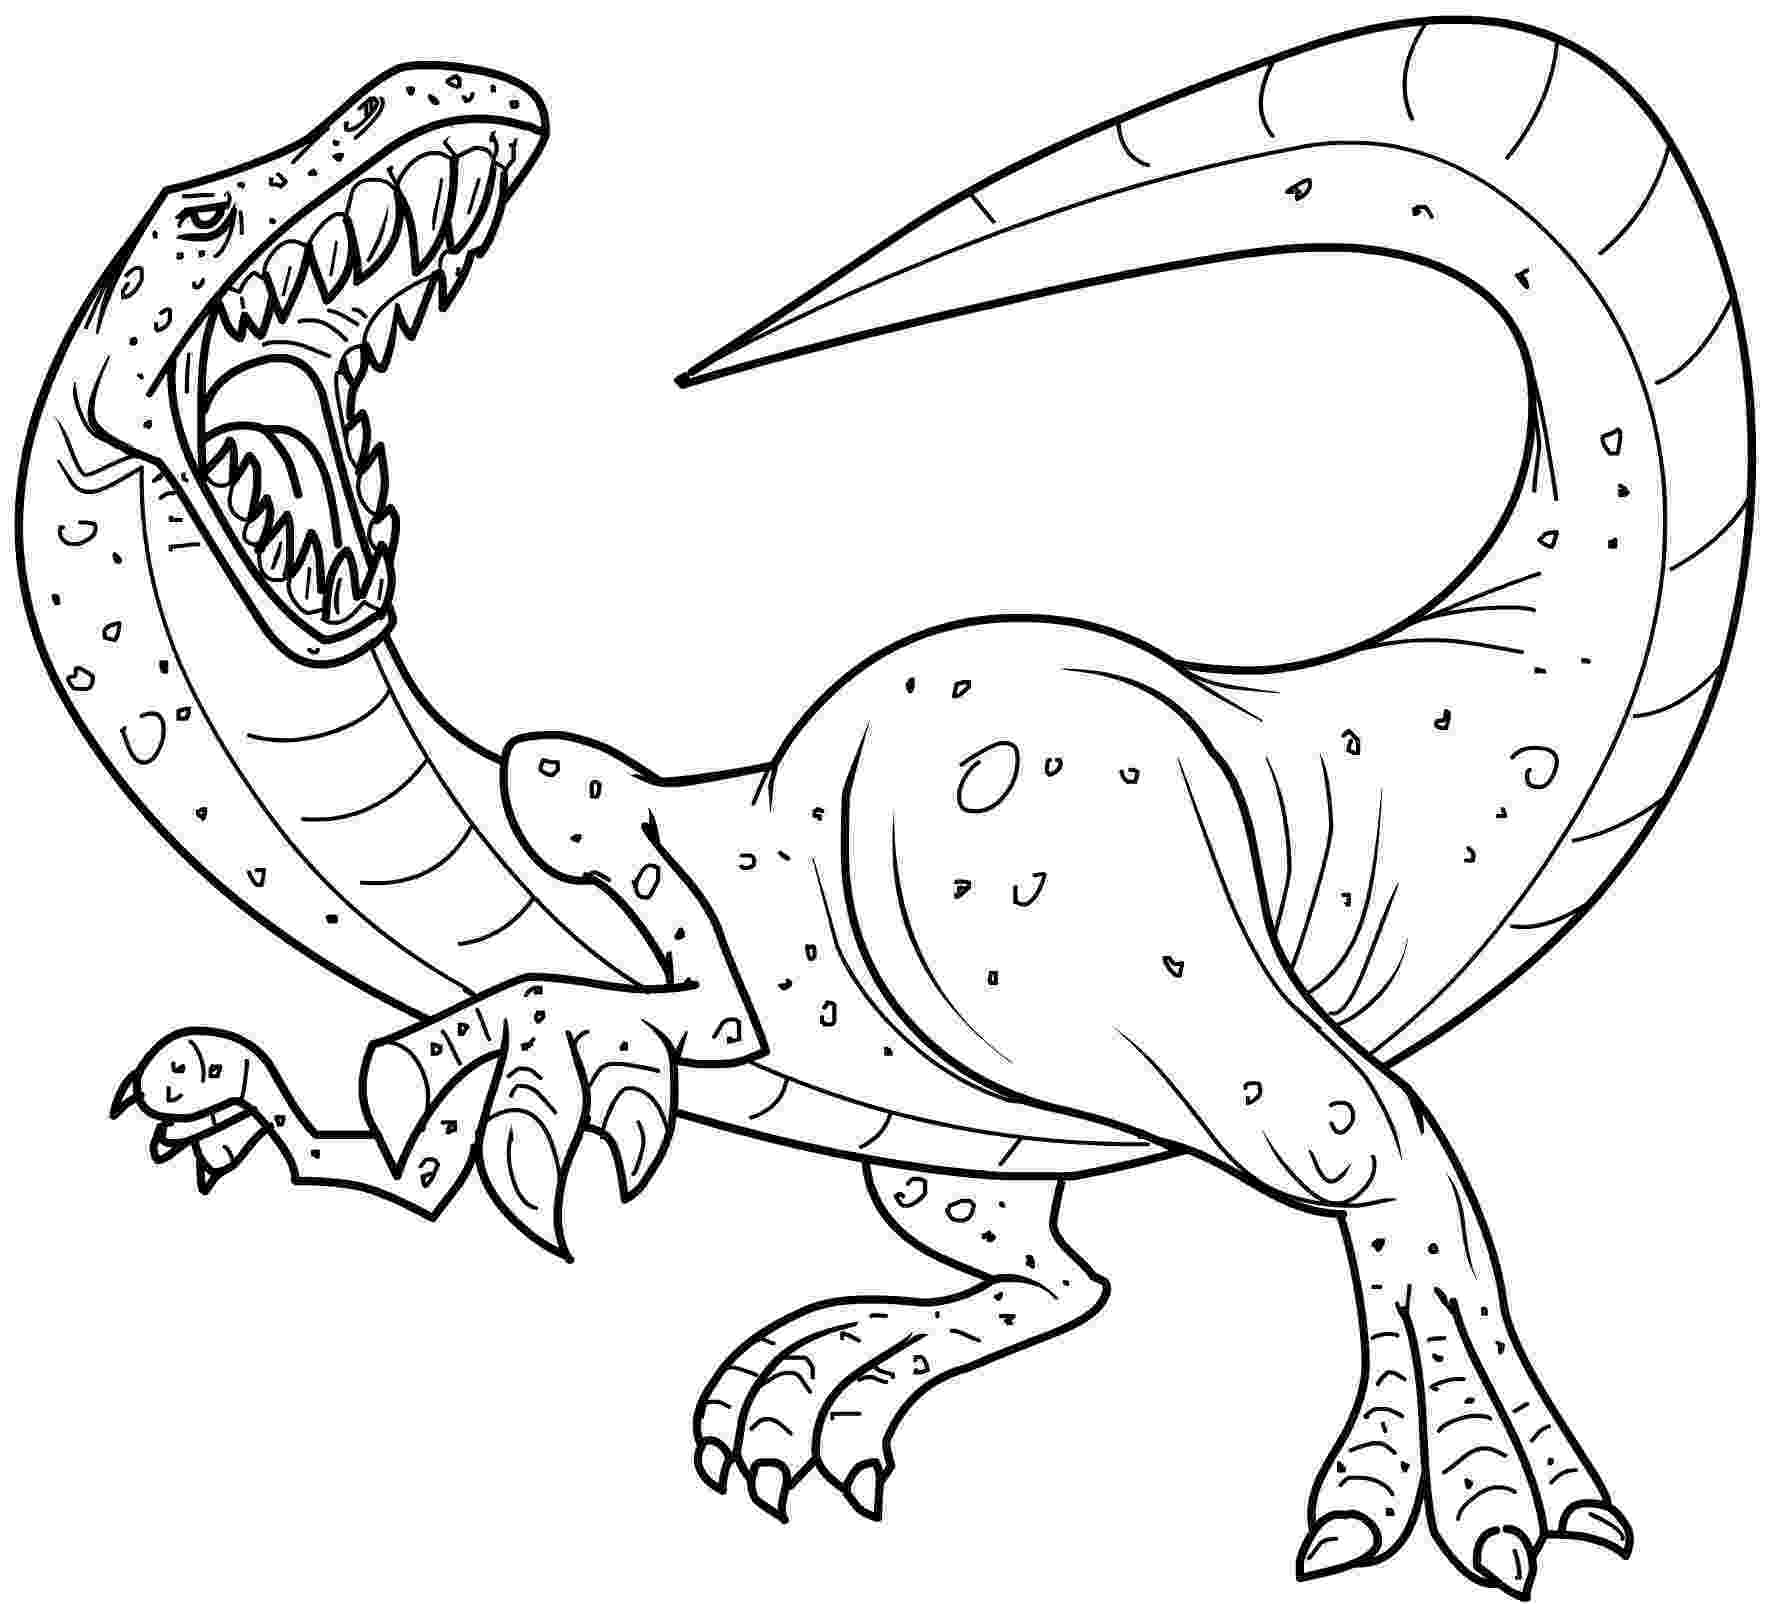 dinosaur color page free printable dinosaur coloring pages for kids dinosaur page color